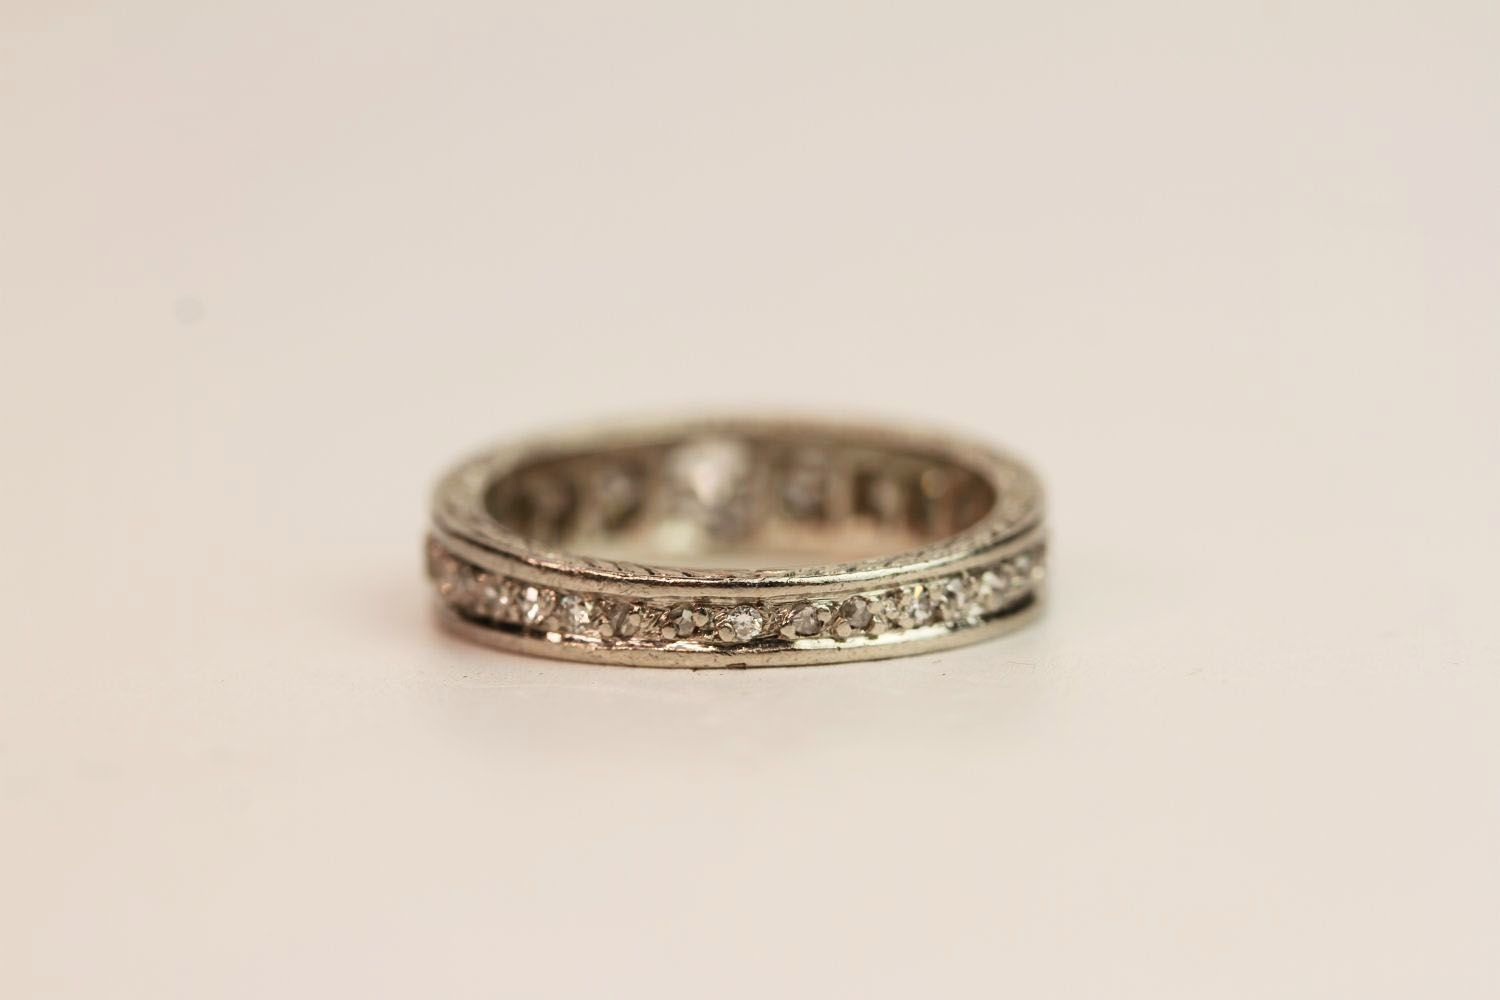 1930s Graduated Diamond Ring, detailing to the sid - Image 3 of 3